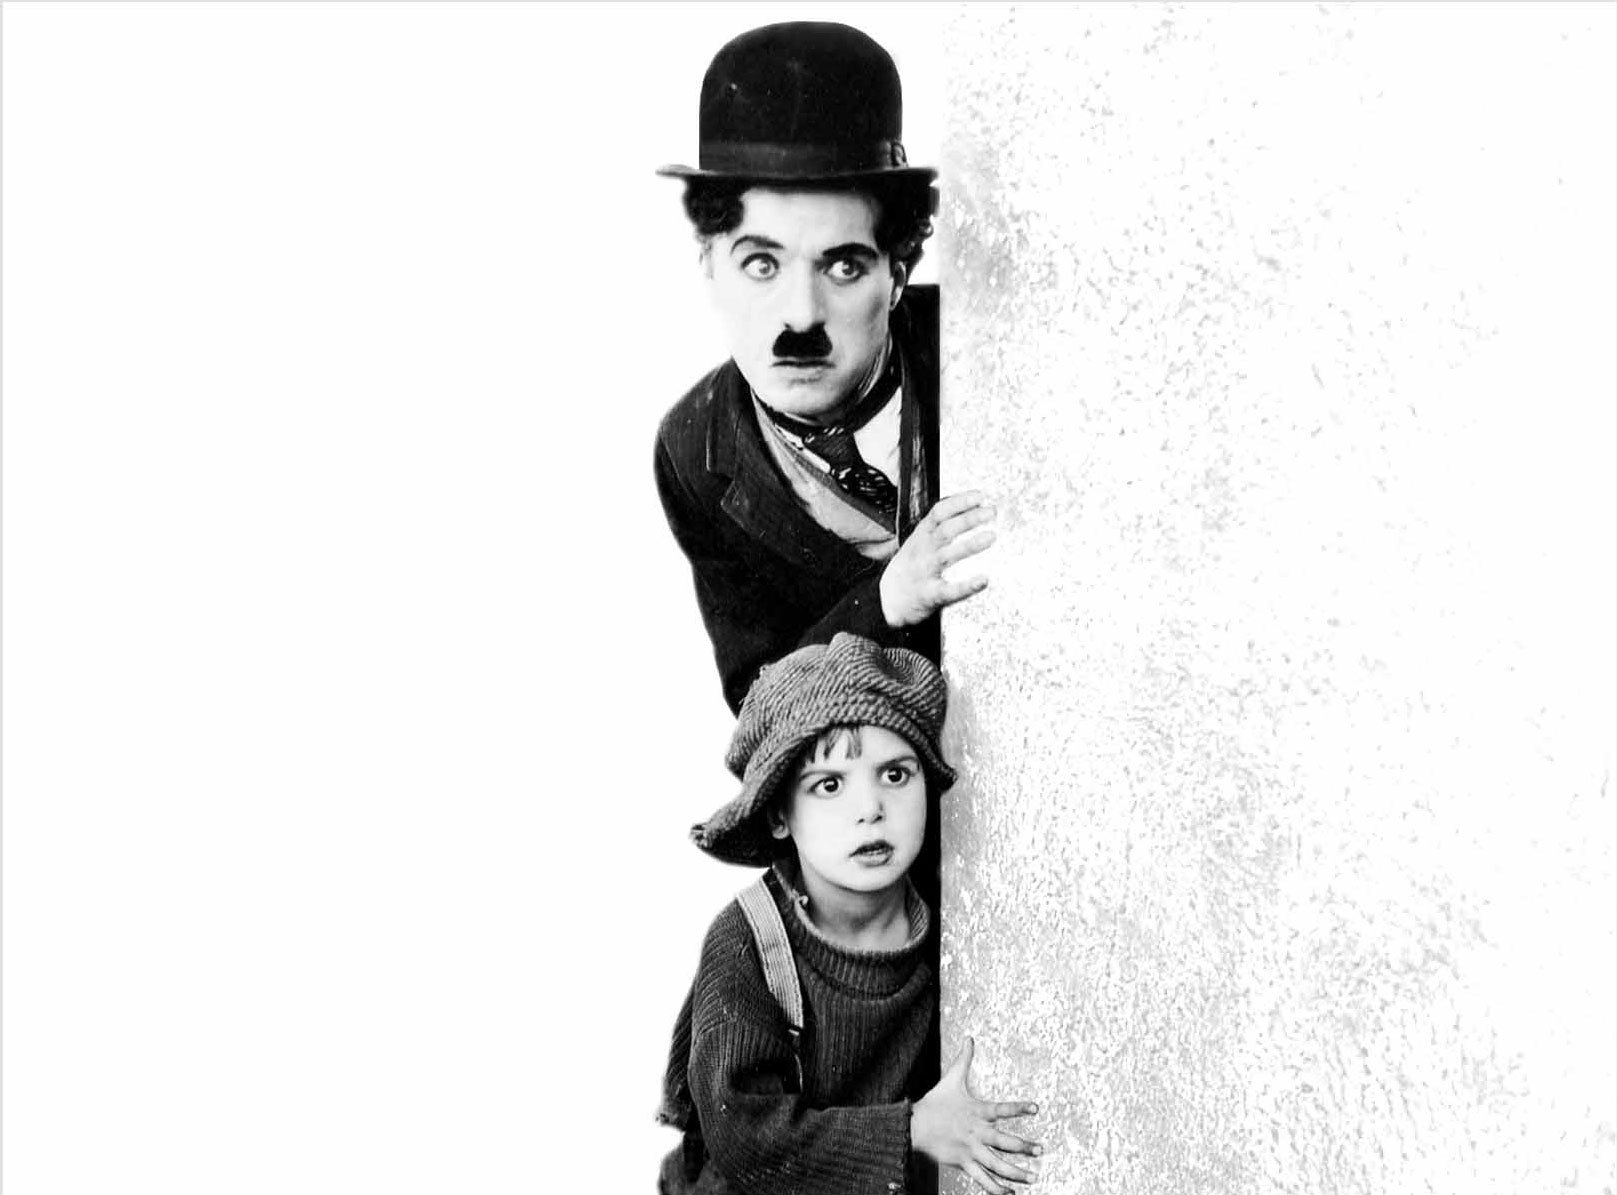 Charlie Chaplin Wallpaper and Background Image 1617x1195 ID 1617x1195